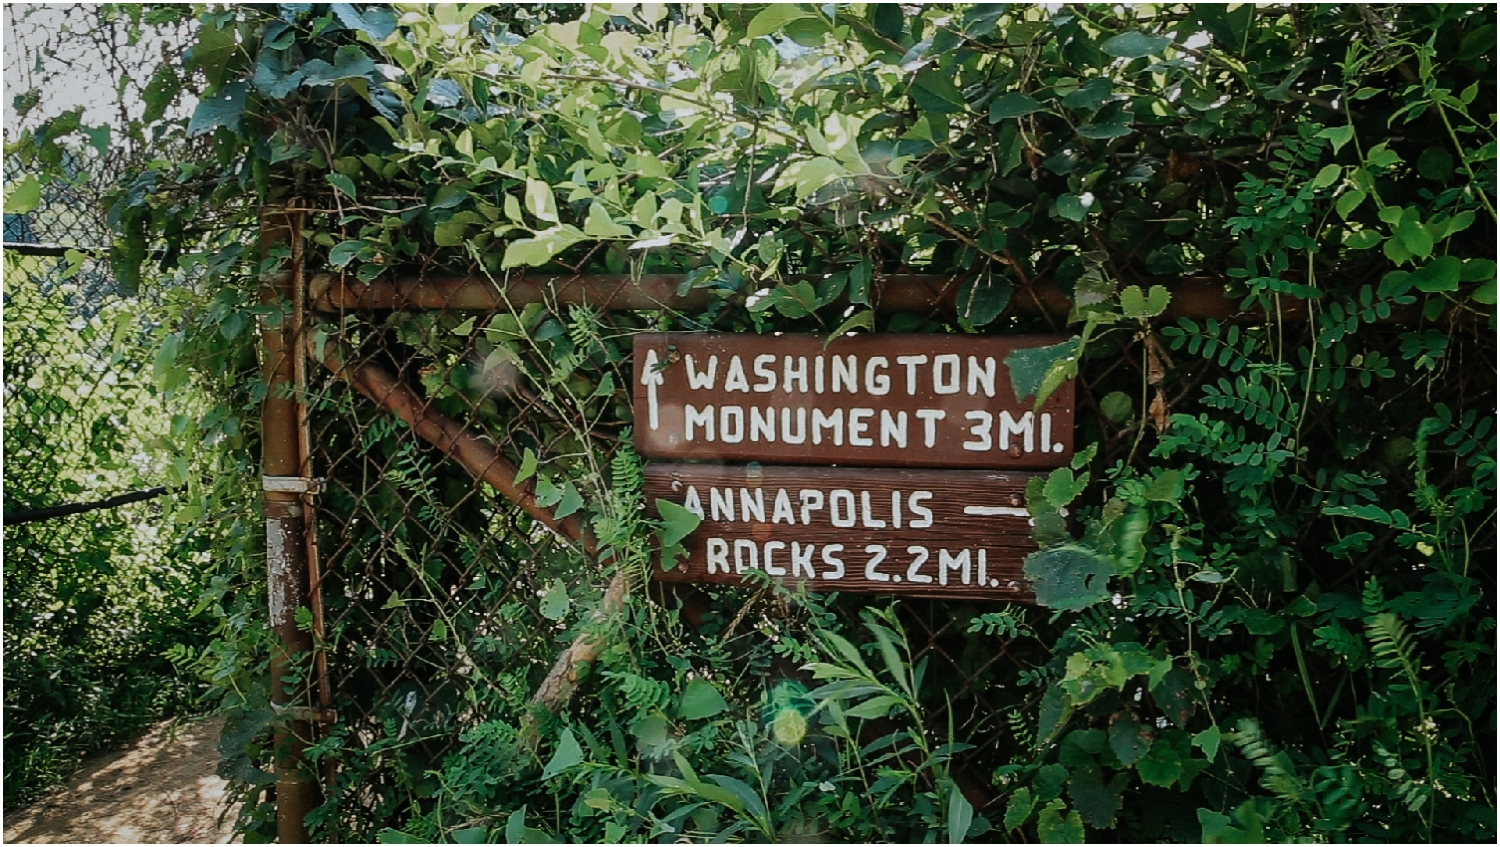 katy-sergent-photography-proposal-appalachian-trail-annapolis-rocks-adventurous-wedding-couples-intimate-elopement-hiking-backpacking-camping-photographer-johnson-city-tn-northeast-tennessee_0005.jpg